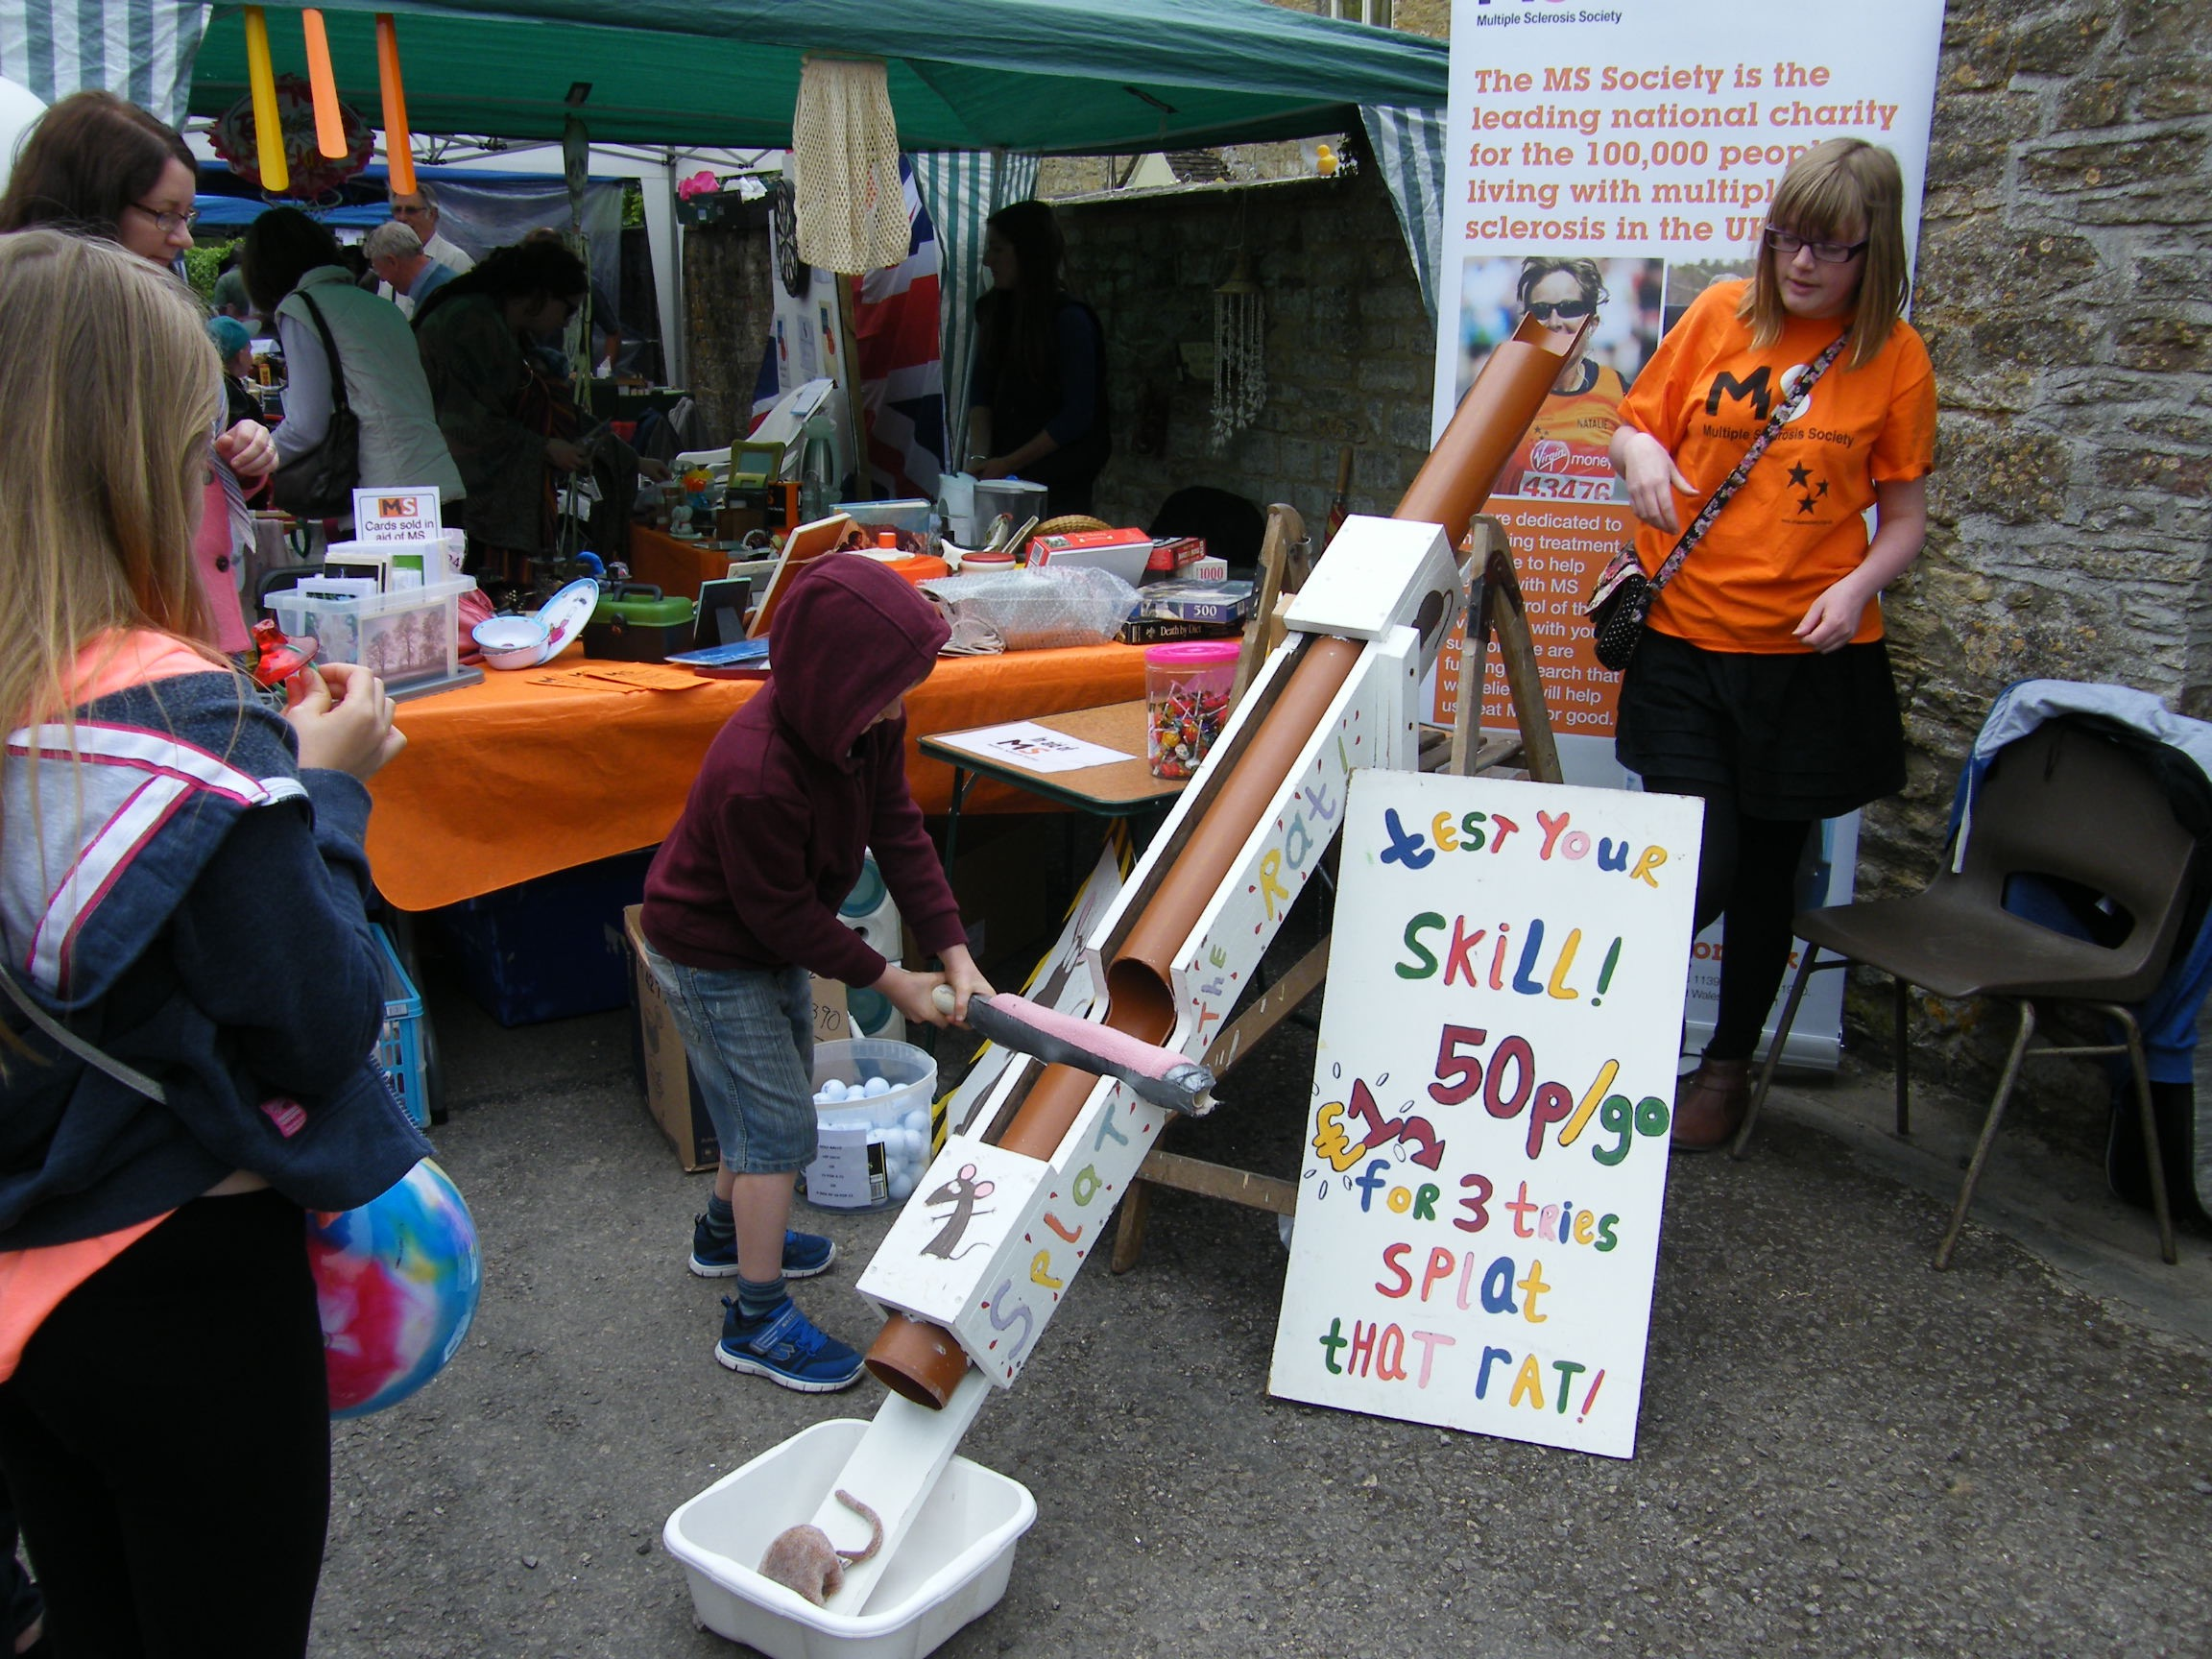 South-Cerney-Street-Fair-Splat-That-Rat